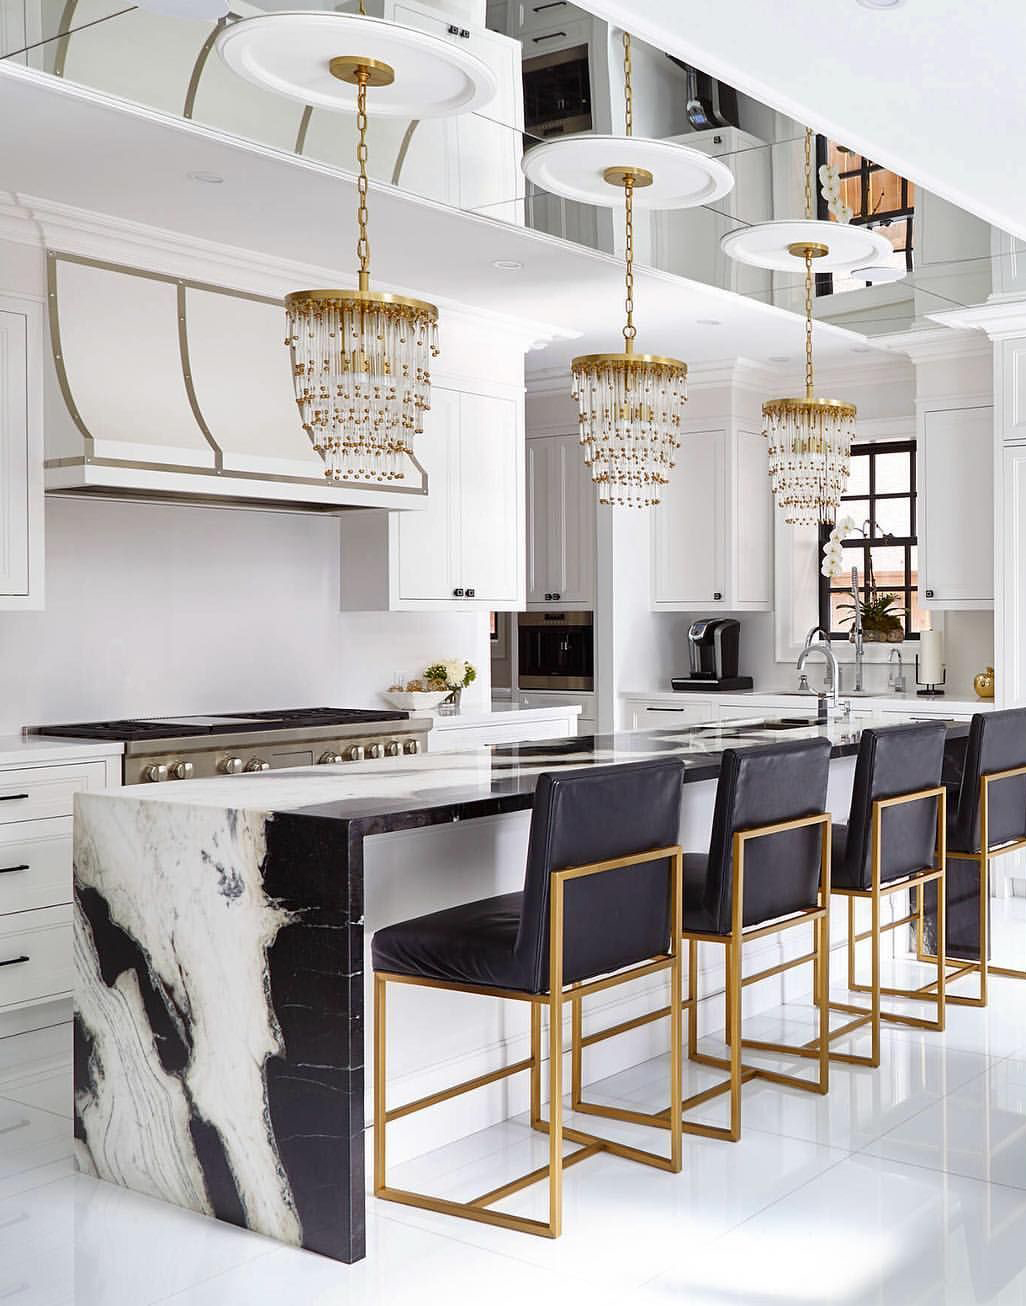 Glamorous Design Archives - BuyerSelect